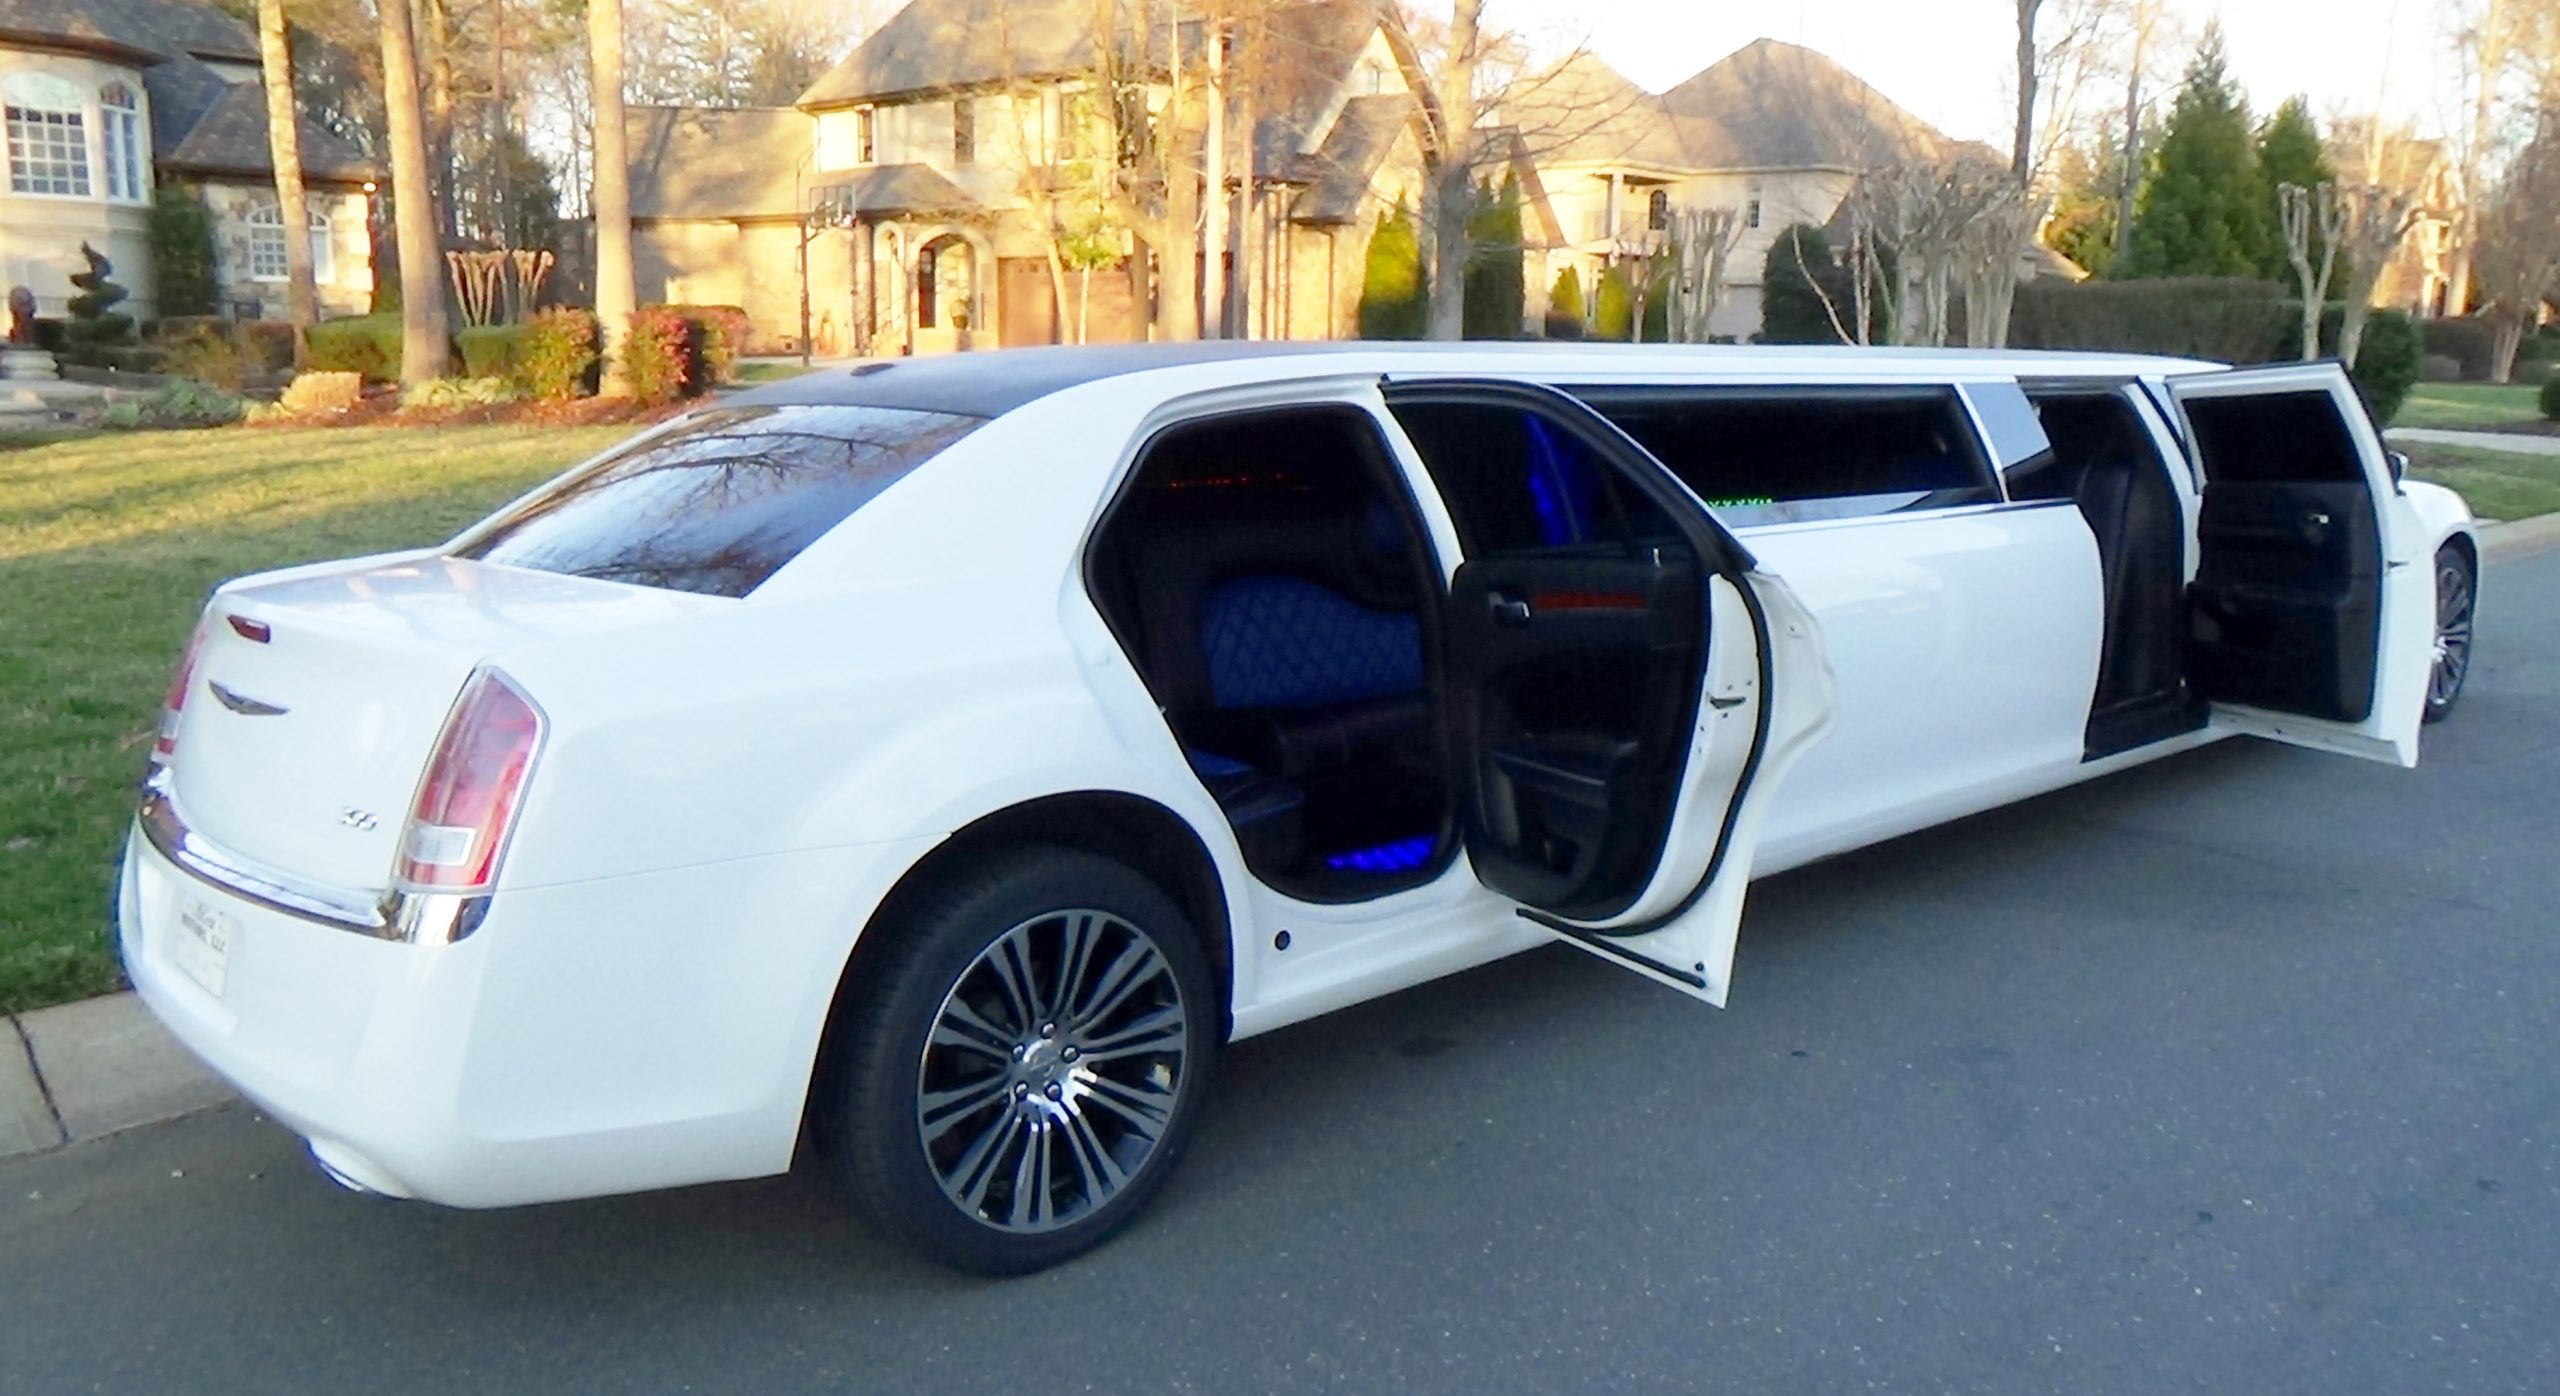 Hire a Limousine for Your Next Date Night